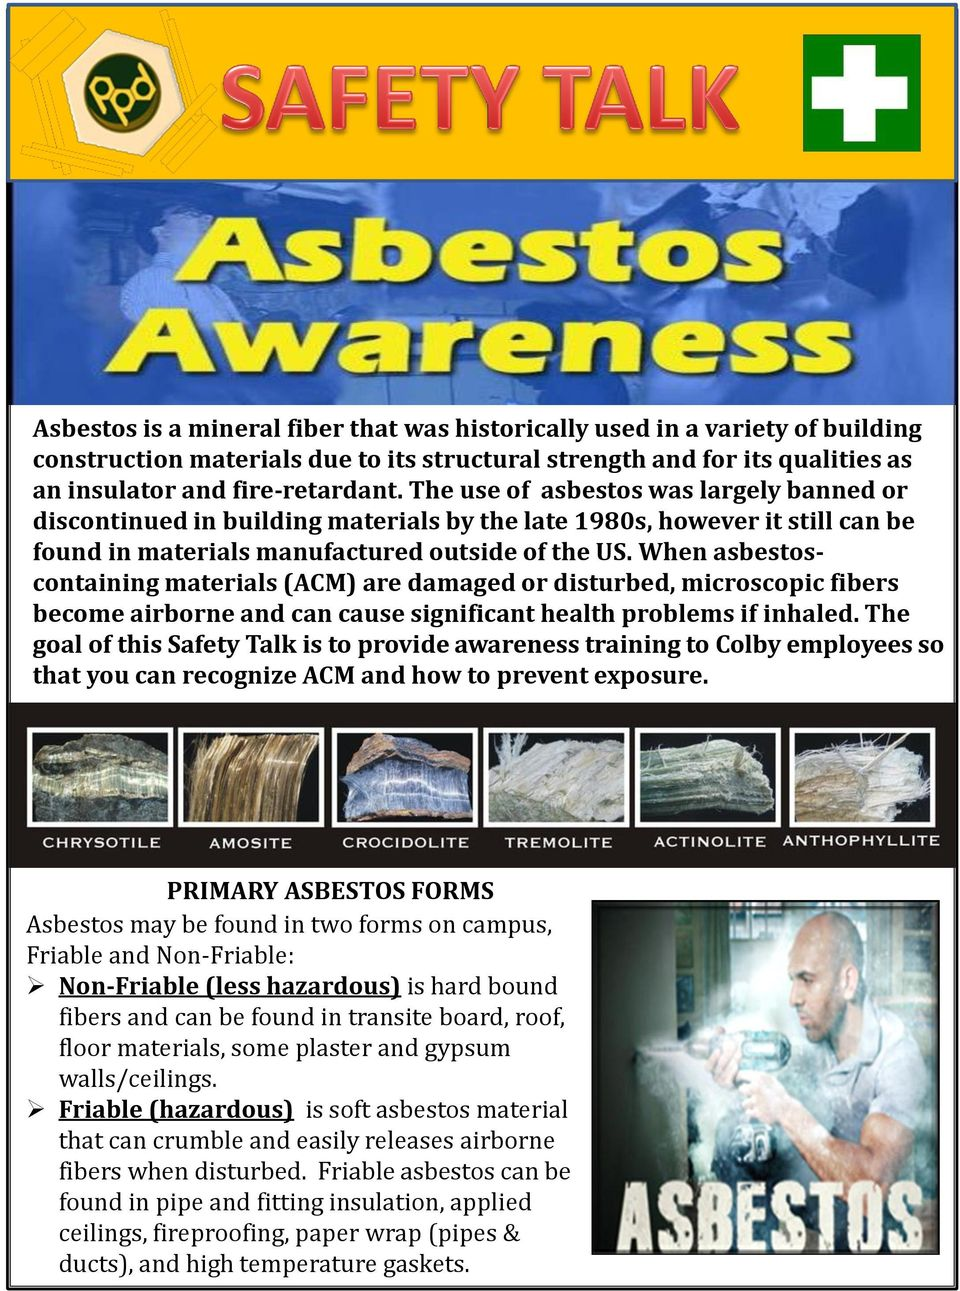 When asbestoscontaining materials (ACM) are damaged or disturbed, microscopic fibers become airborne and can cause significant health problems if inhaled.